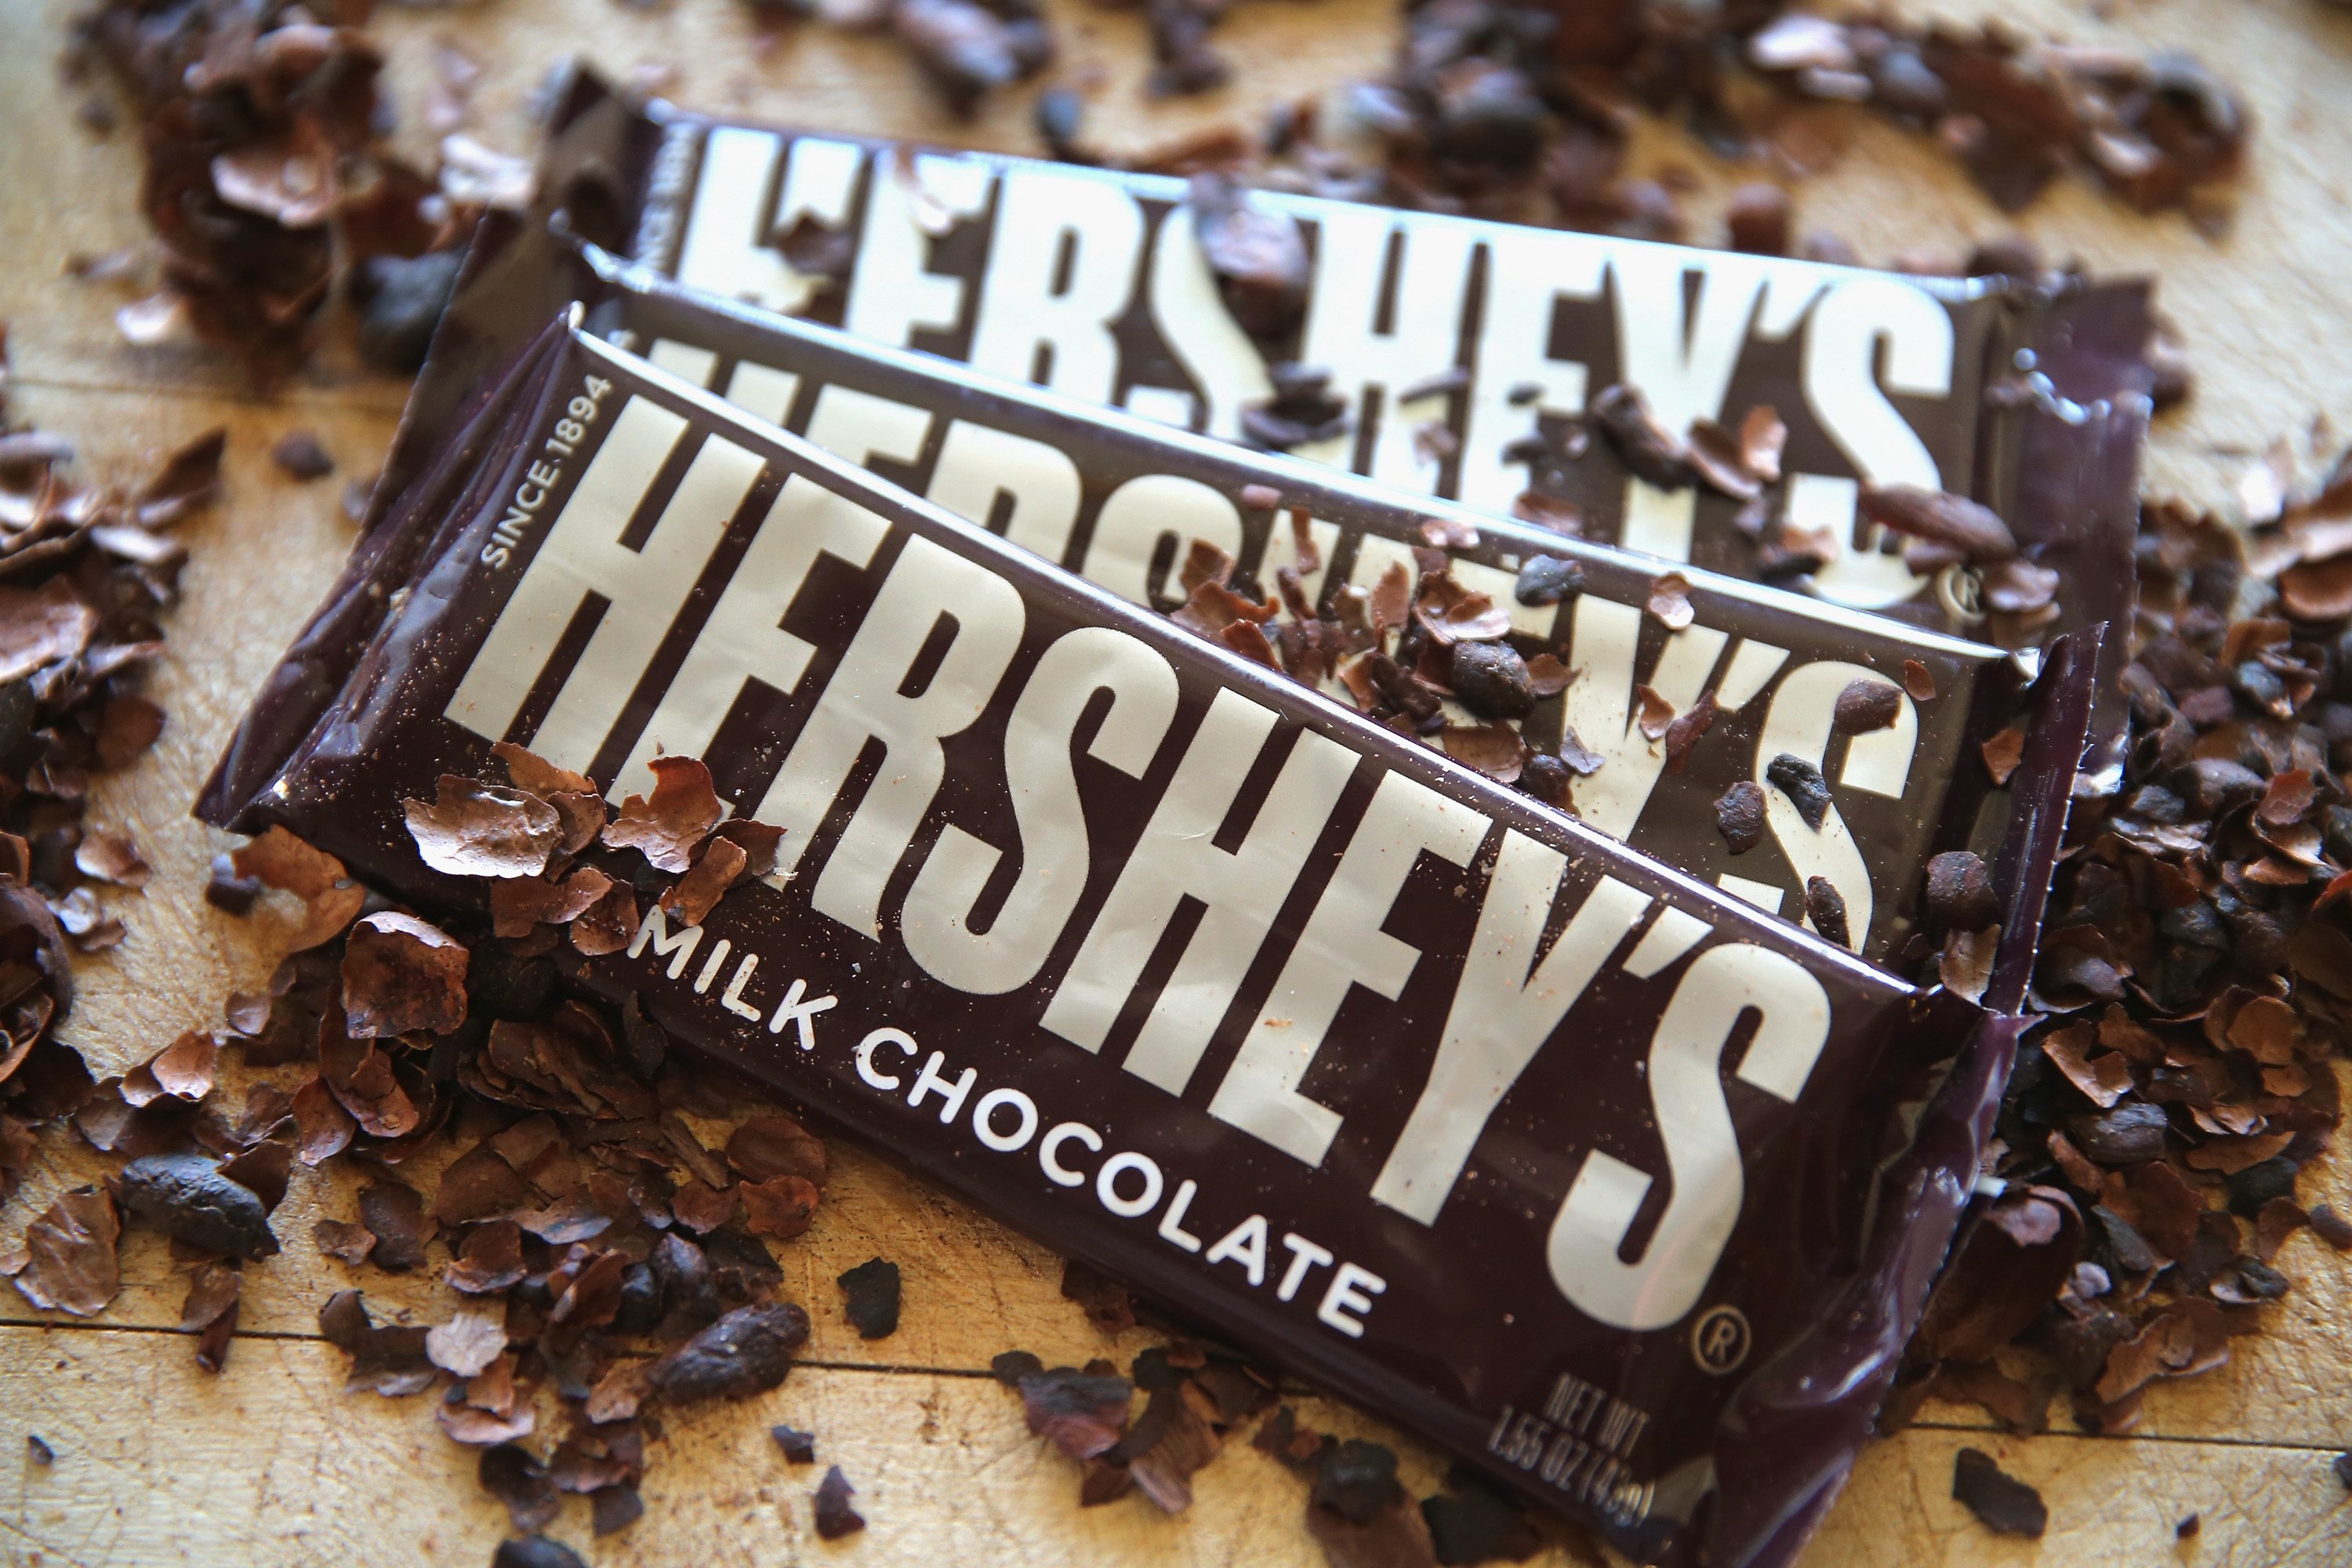 Hershey is uniting with an advertising blockchain consortium